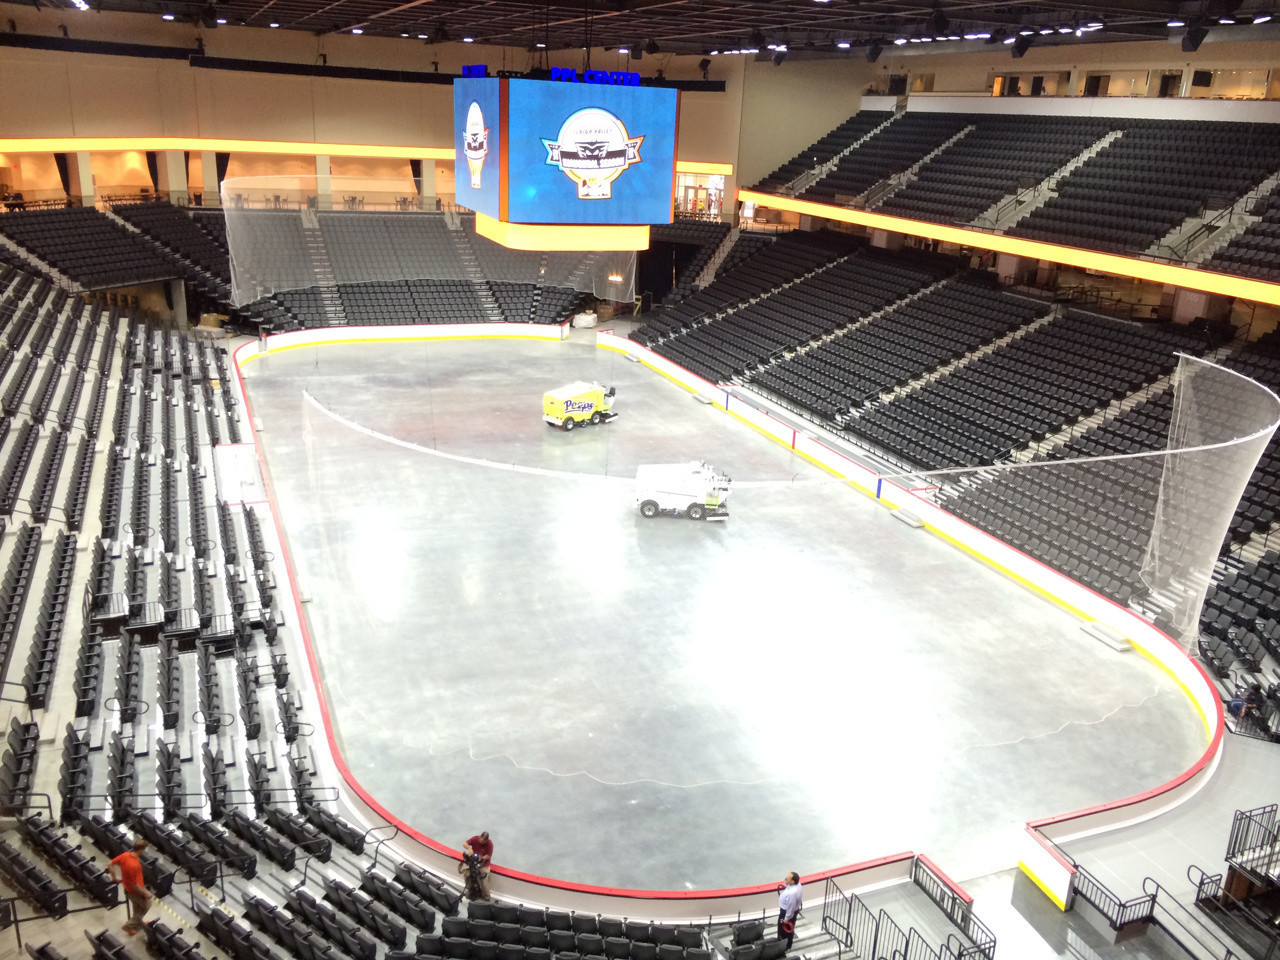 Allentown S Ppl Center Arena Opens The Morning Call